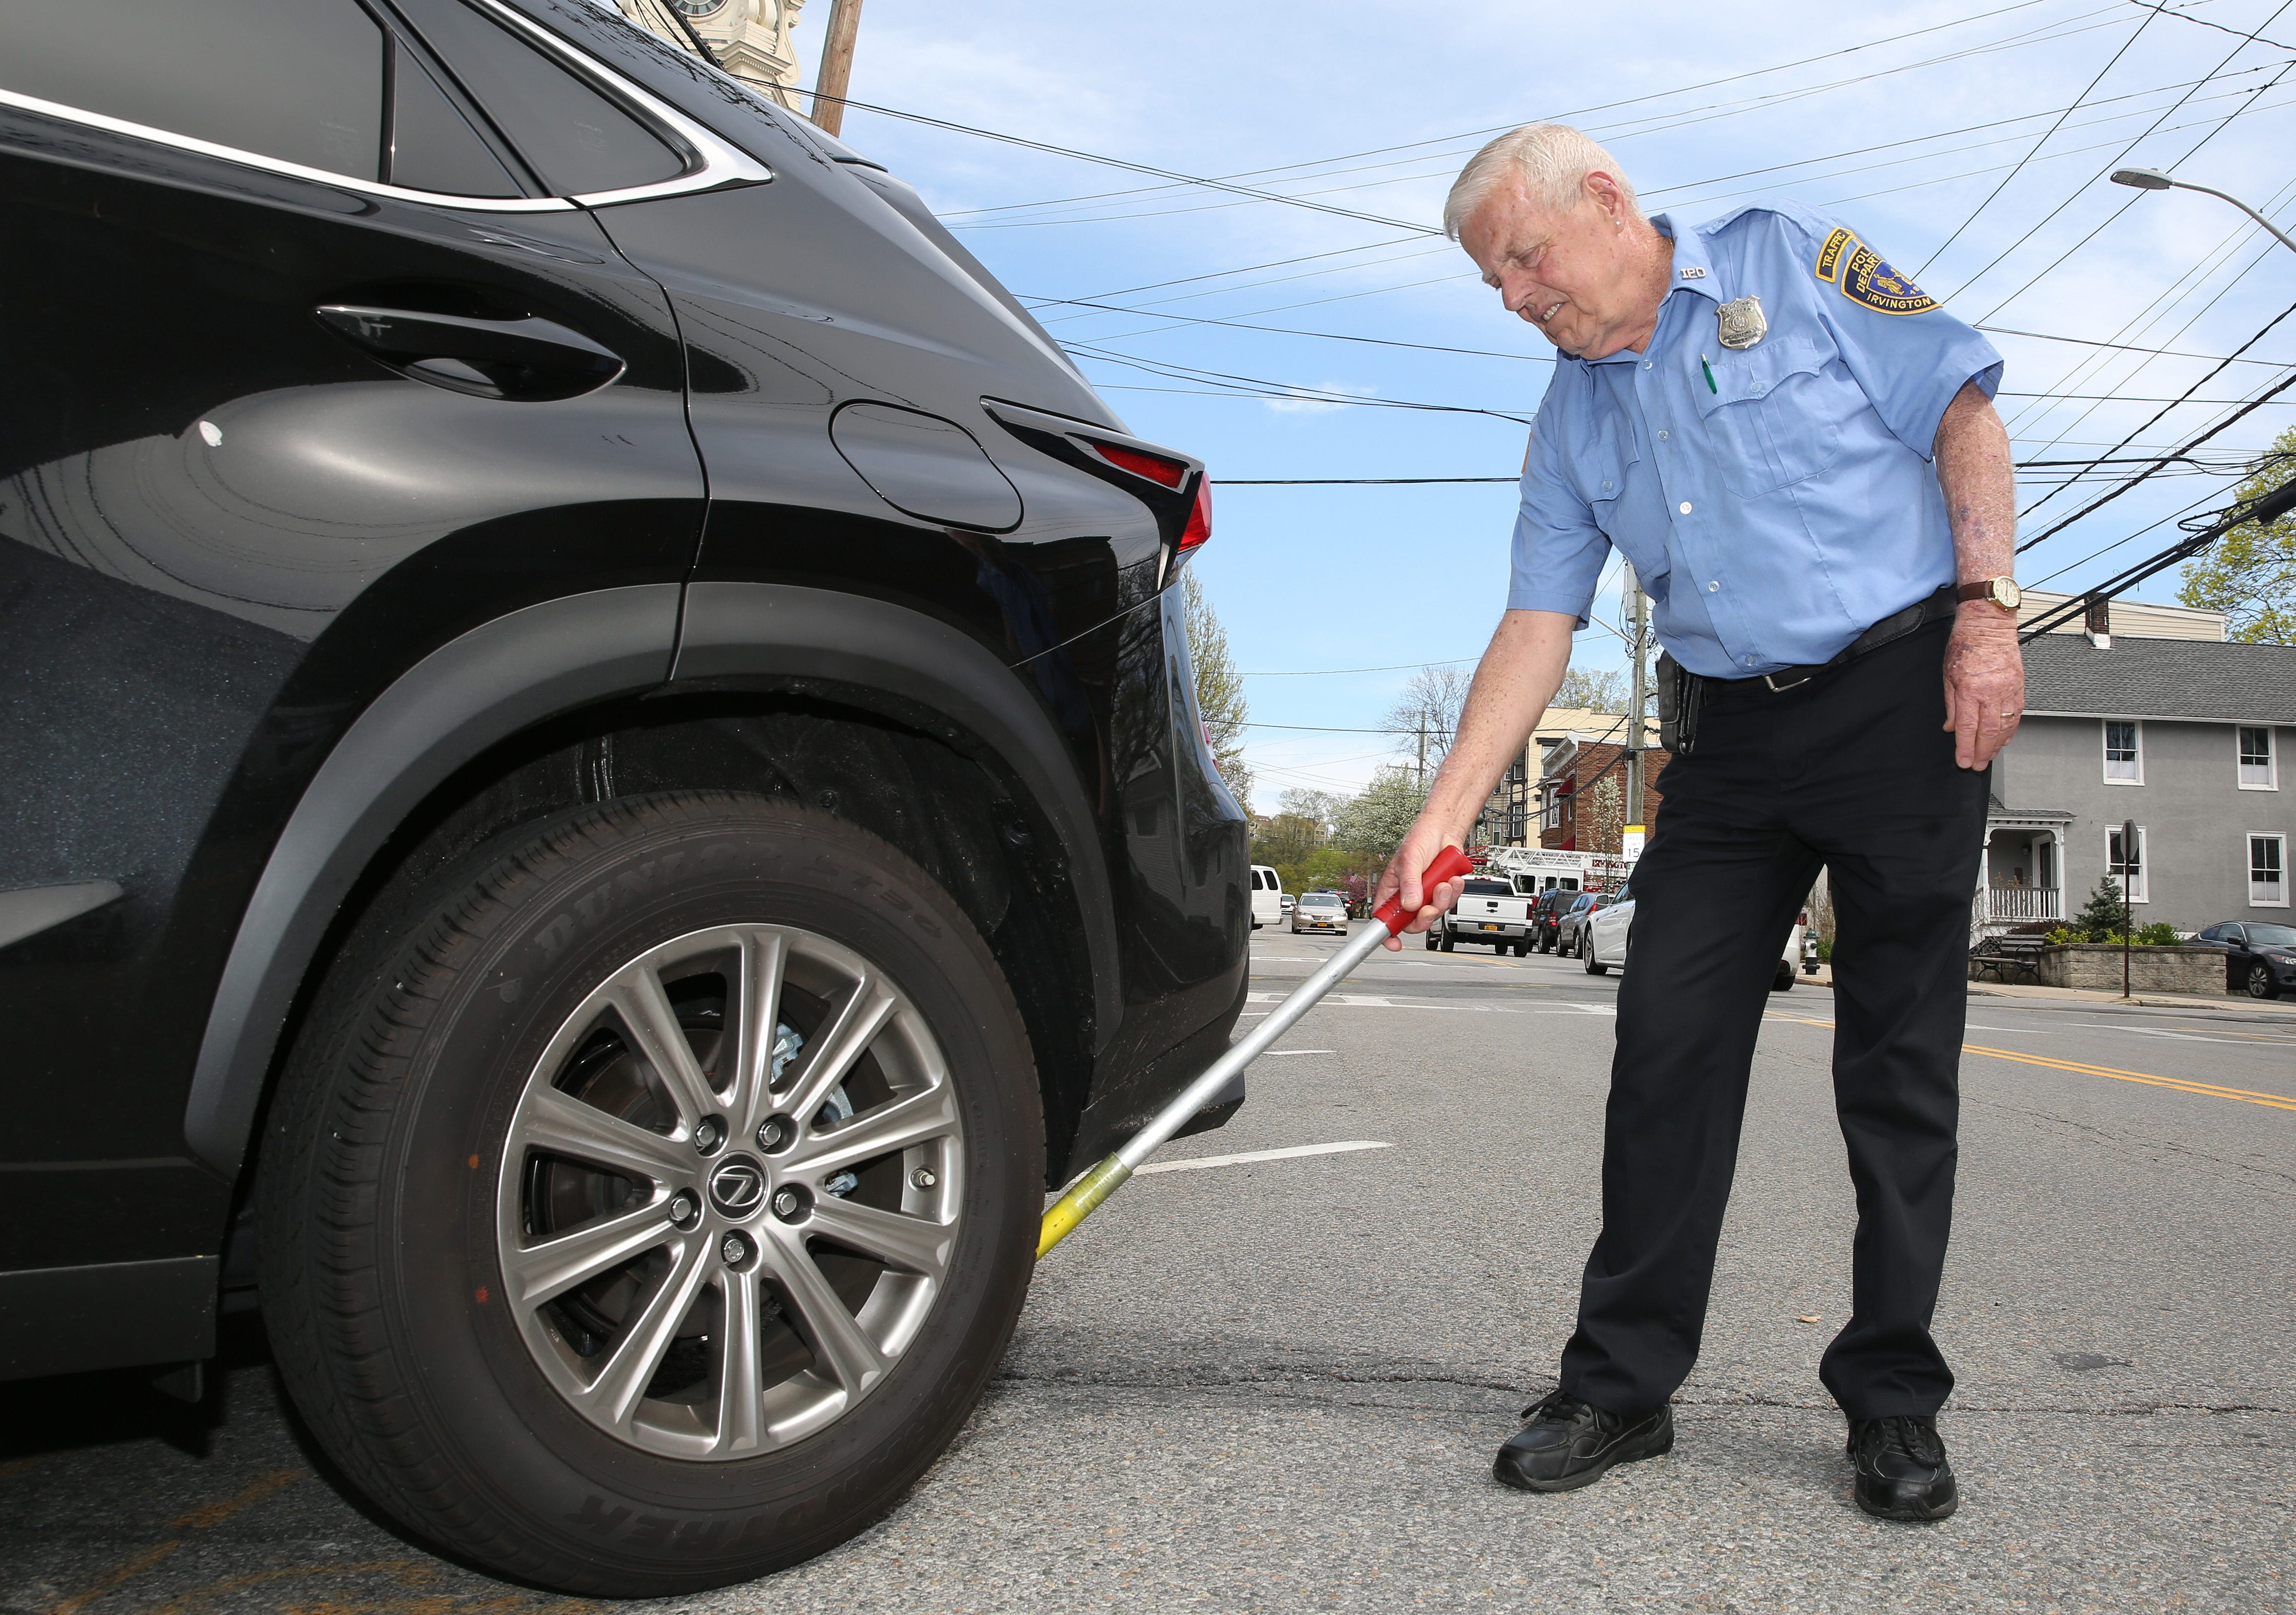 Chalking tires to enforce parking is unconstitutional court says